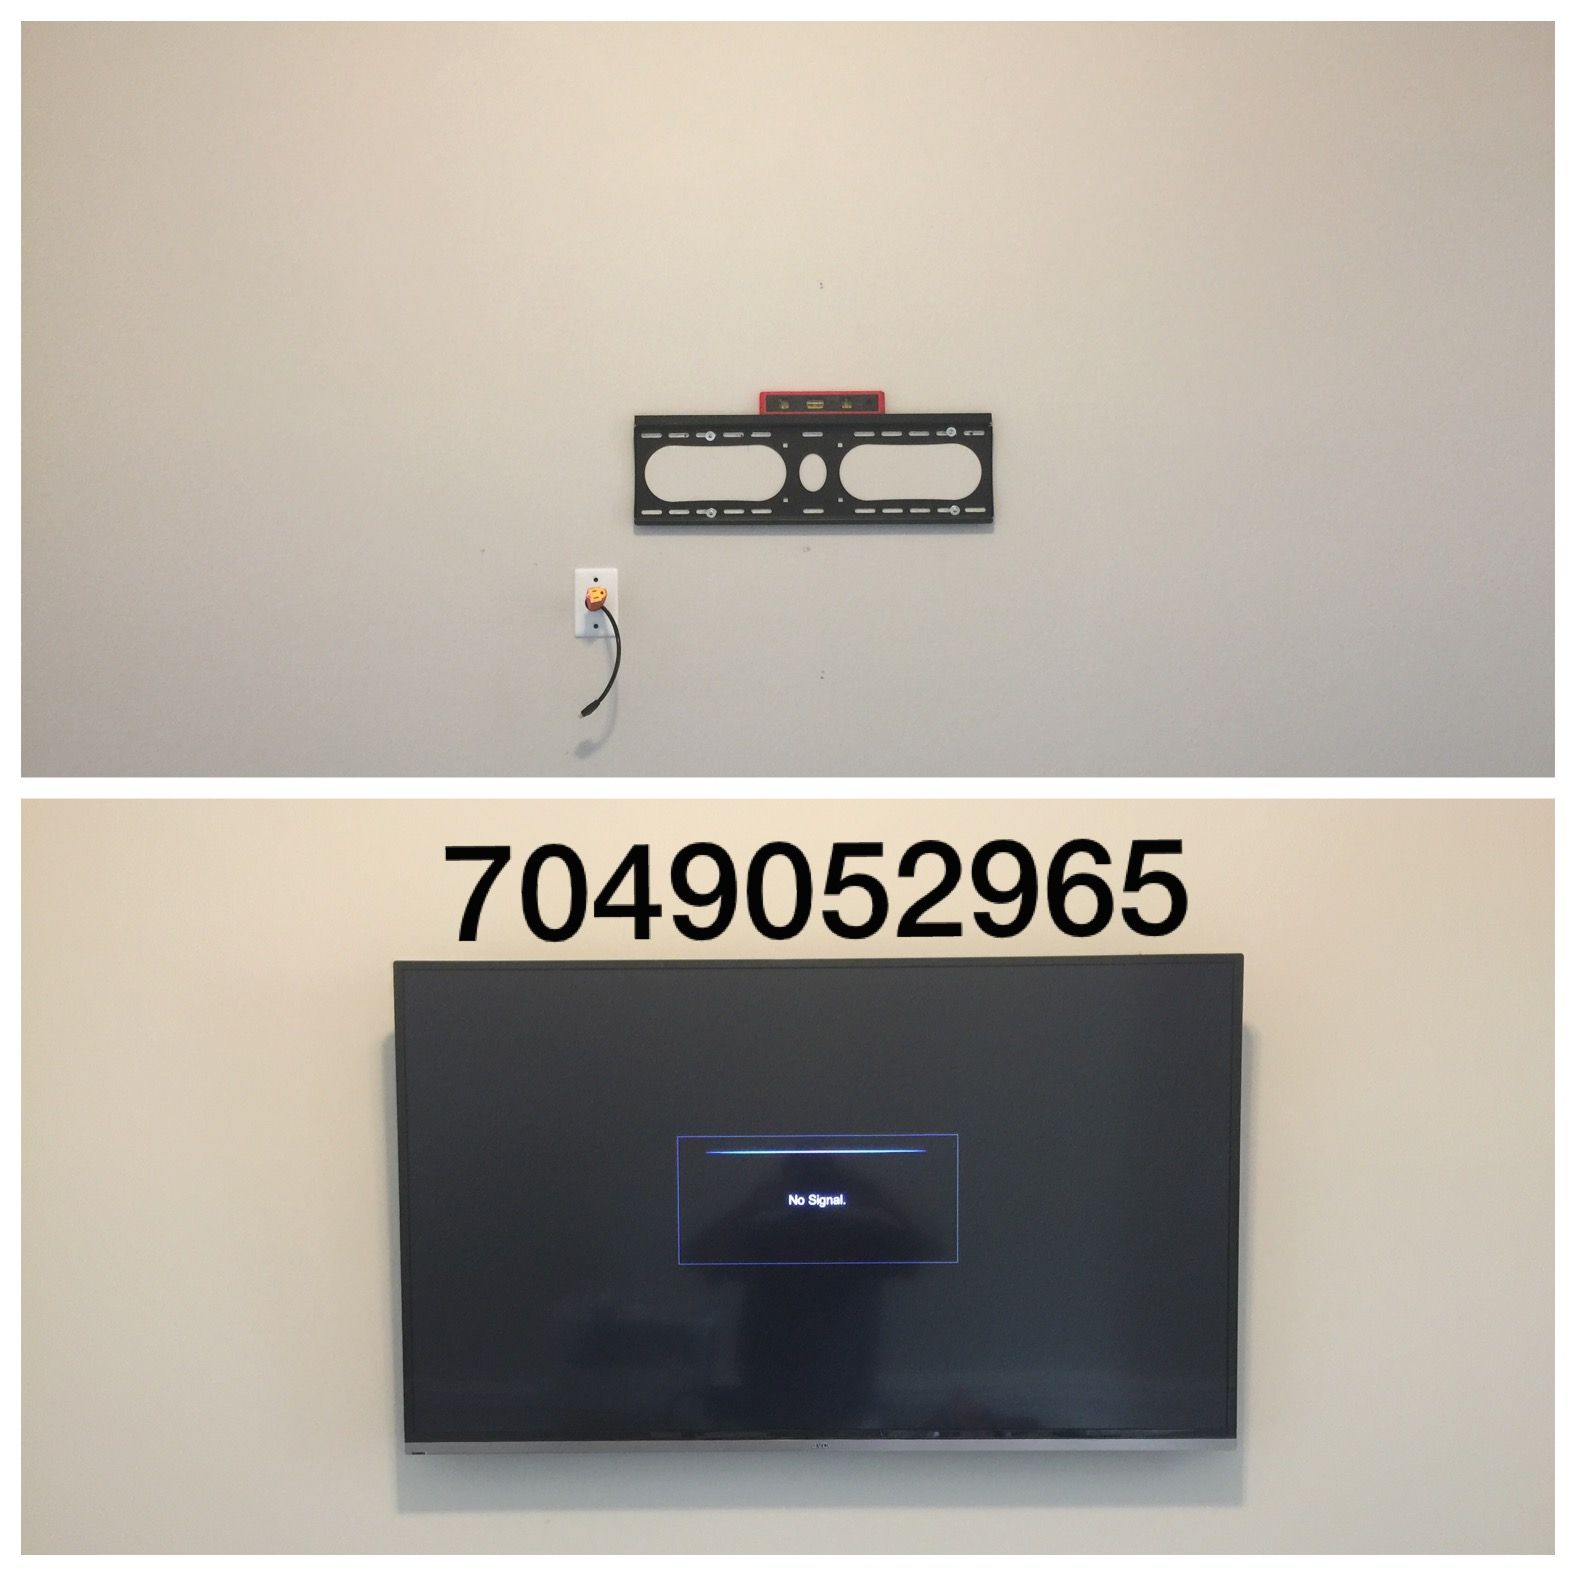 We Specialize In: 4K / Smart TV / OLED Setup, Installation and Wall Mounting LCD / Plasma Flat-Panel Television Mounting Home Theater Setup Infrared Receiver Installation Surround Sound Sales & Installation Outdoor Speaker Sales & Installation http://tvmountcharlotte.com/